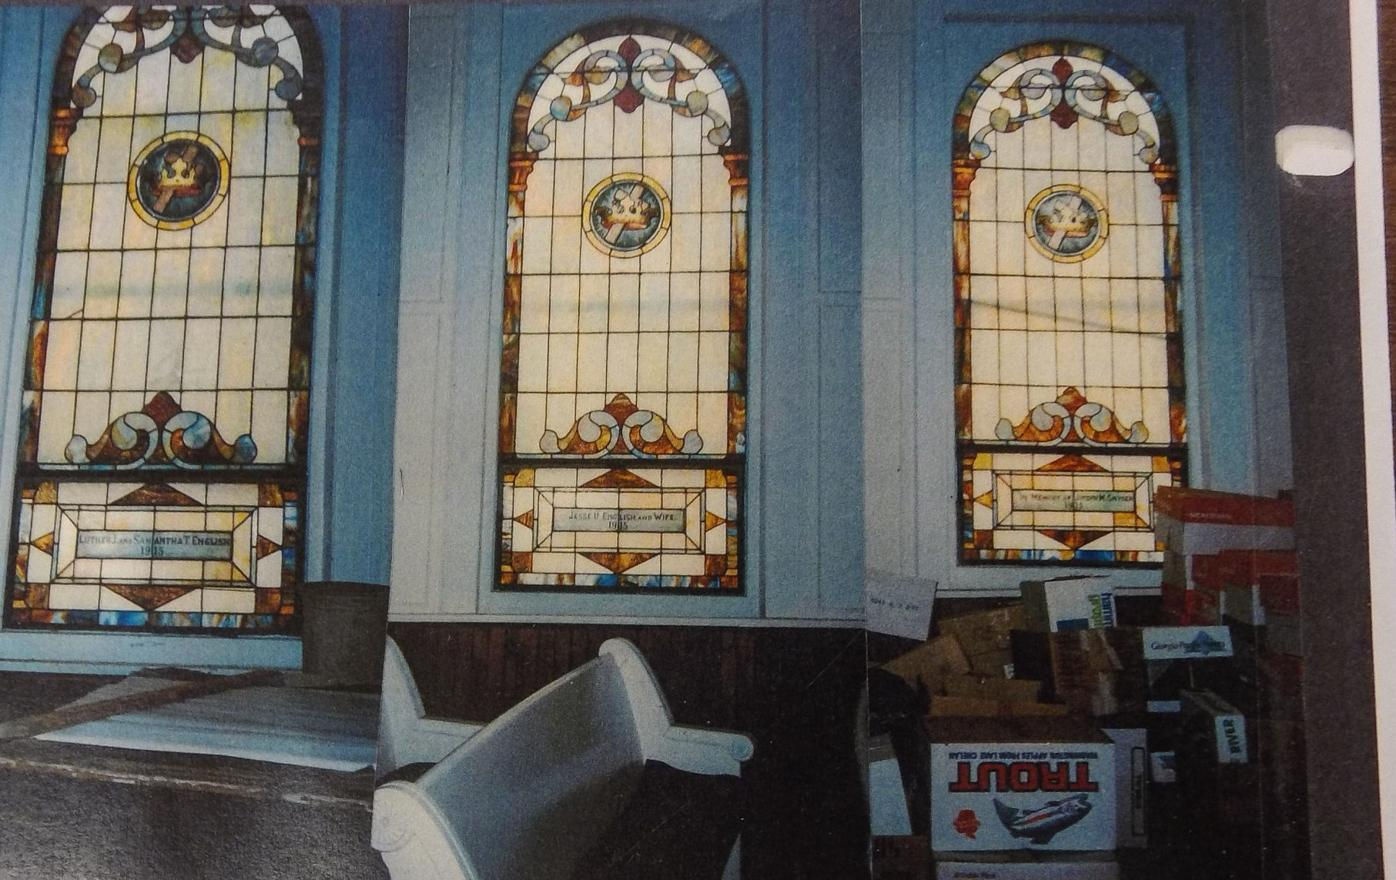 The windows of the Snyder Hill Baptist Church